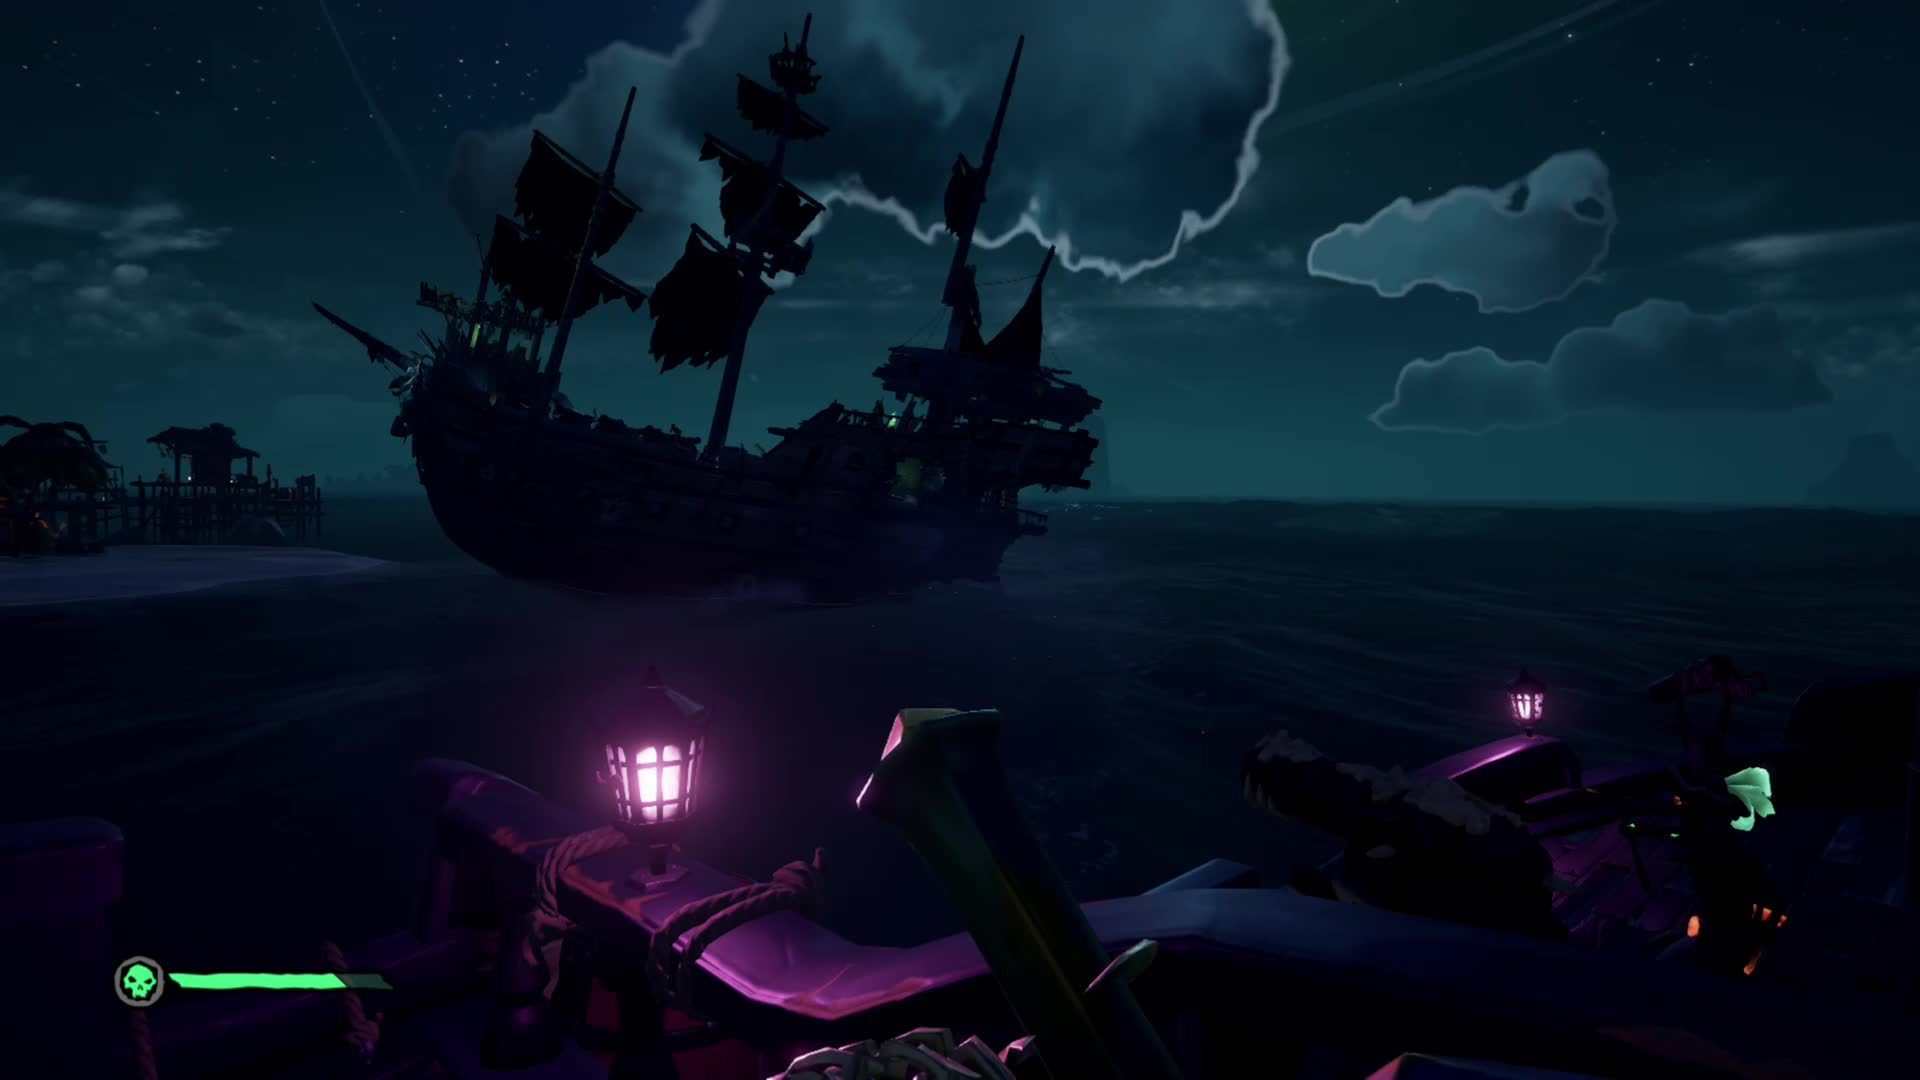 Queen Perpetual, SeaofThieves, gamer dvr, xbox, xbox one, Flying Dutchman GIFs